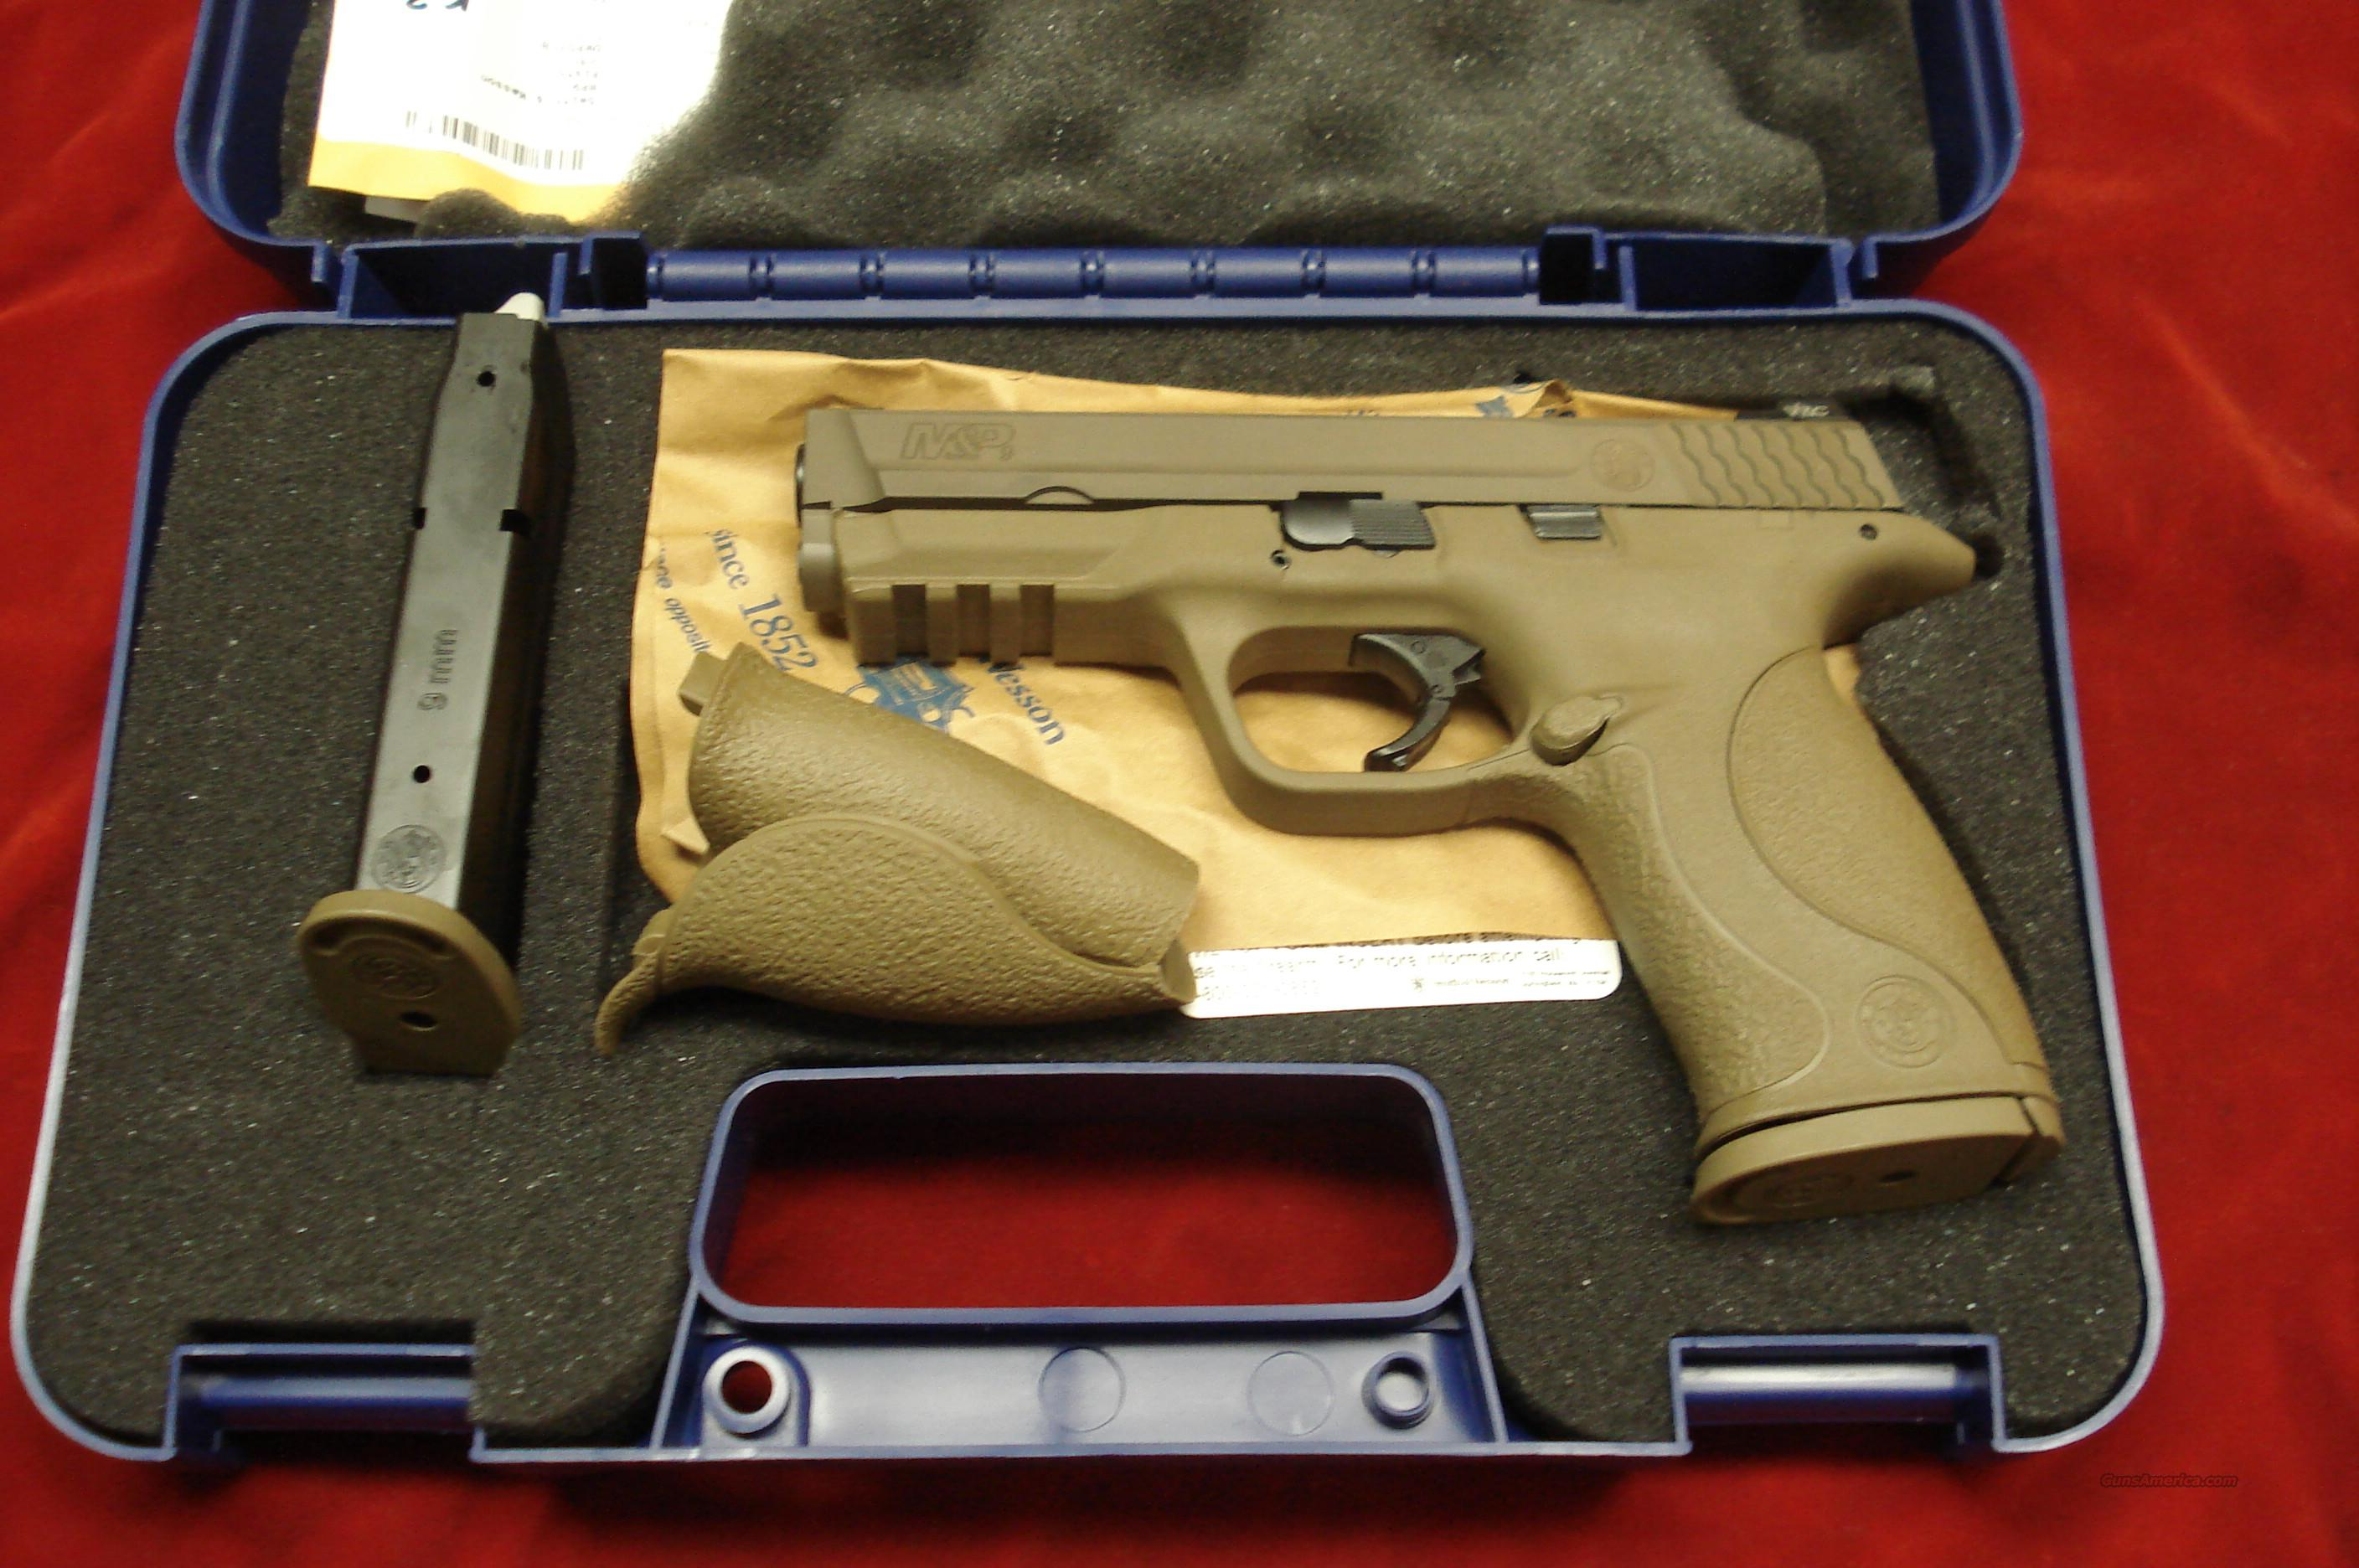 SMITH AND WESSON M&P VTAC 9MM FLAT DARK EARTH NEW  Guns > Pistols > Smith & Wesson Pistols - Autos > Polymer Frame